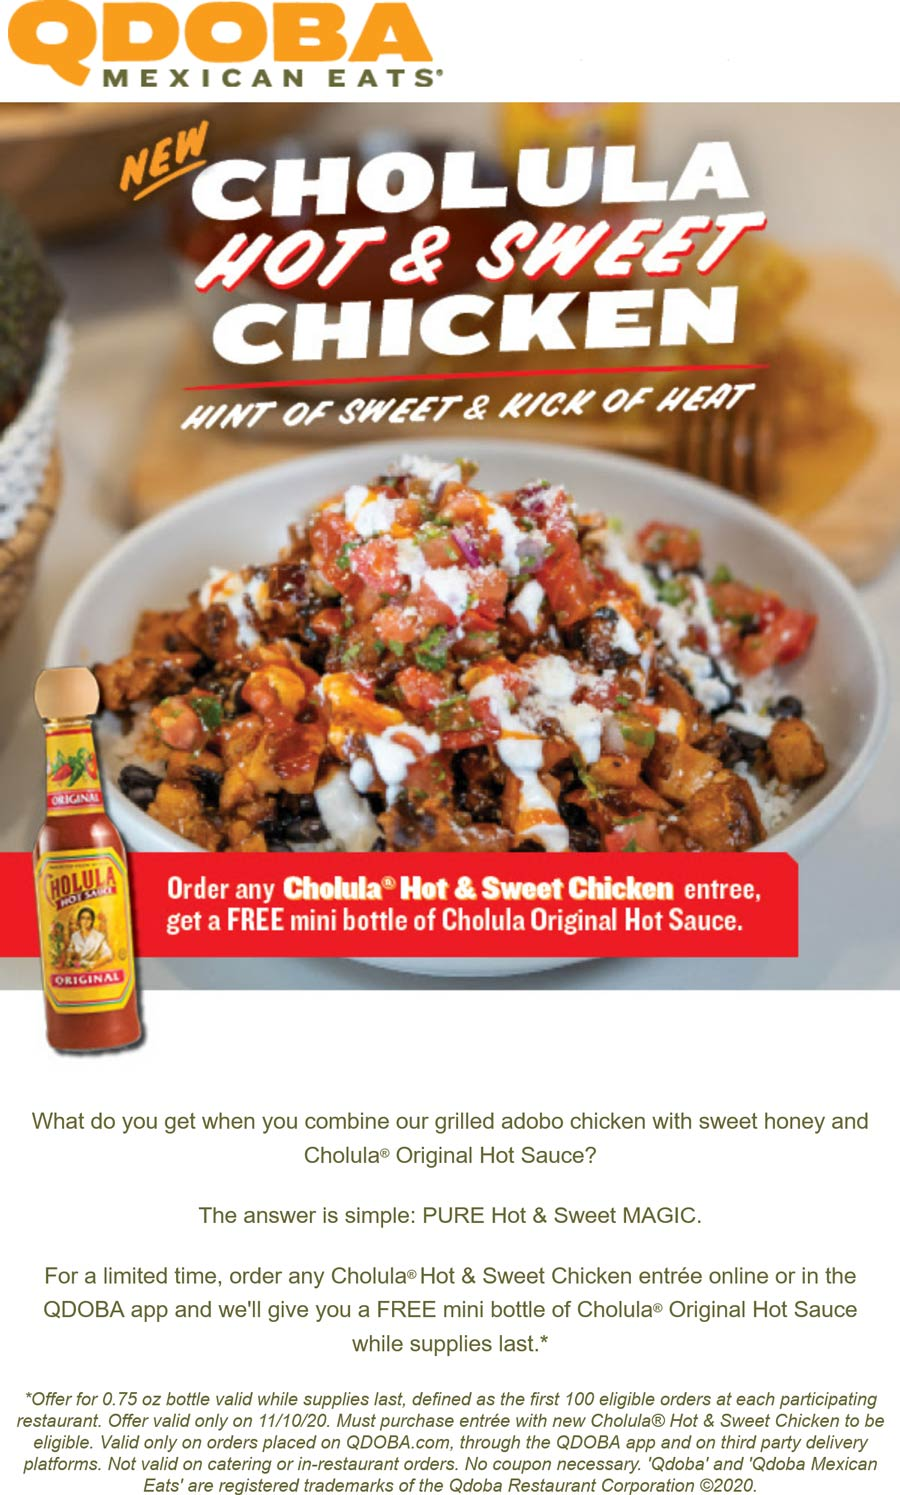 Qdoba restaurants Coupon  Free bottle of Cholula with your hot & sweet chicken entree today at Qdoba Mexican Eats #qdoba